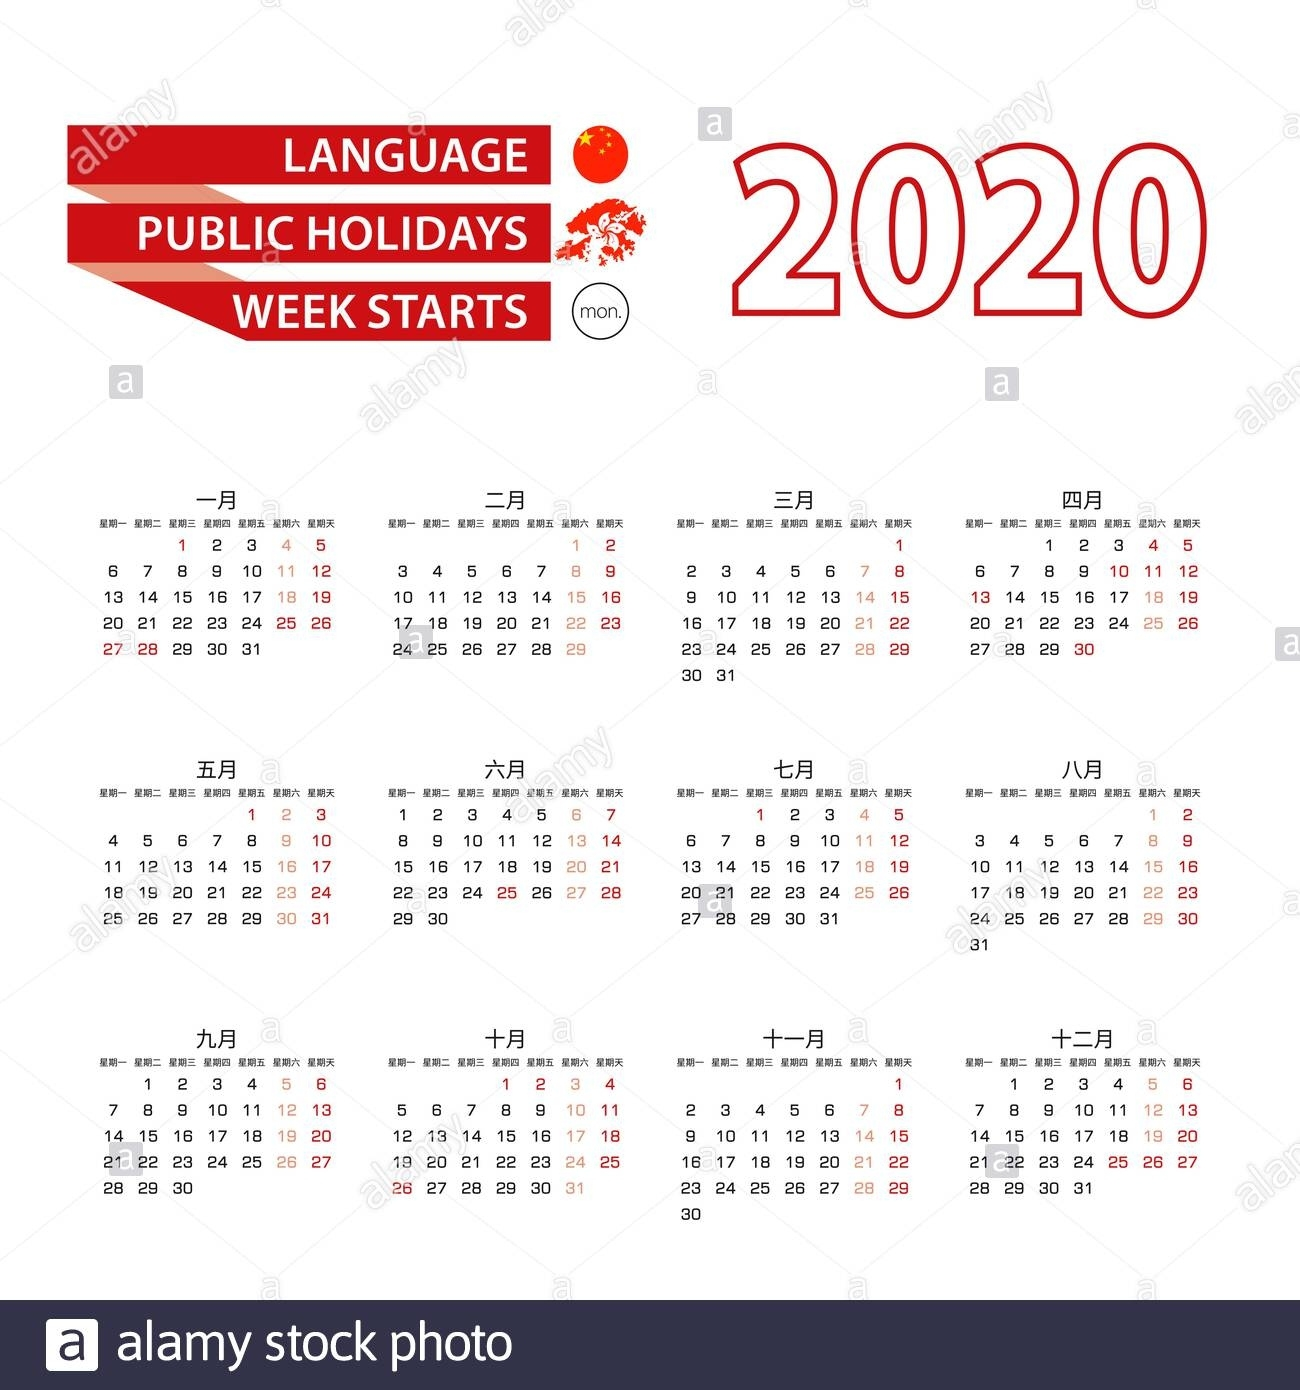 Calendar 2020 In Chinese Language With Public Holidays The Calendar 2021 December Hong Kong